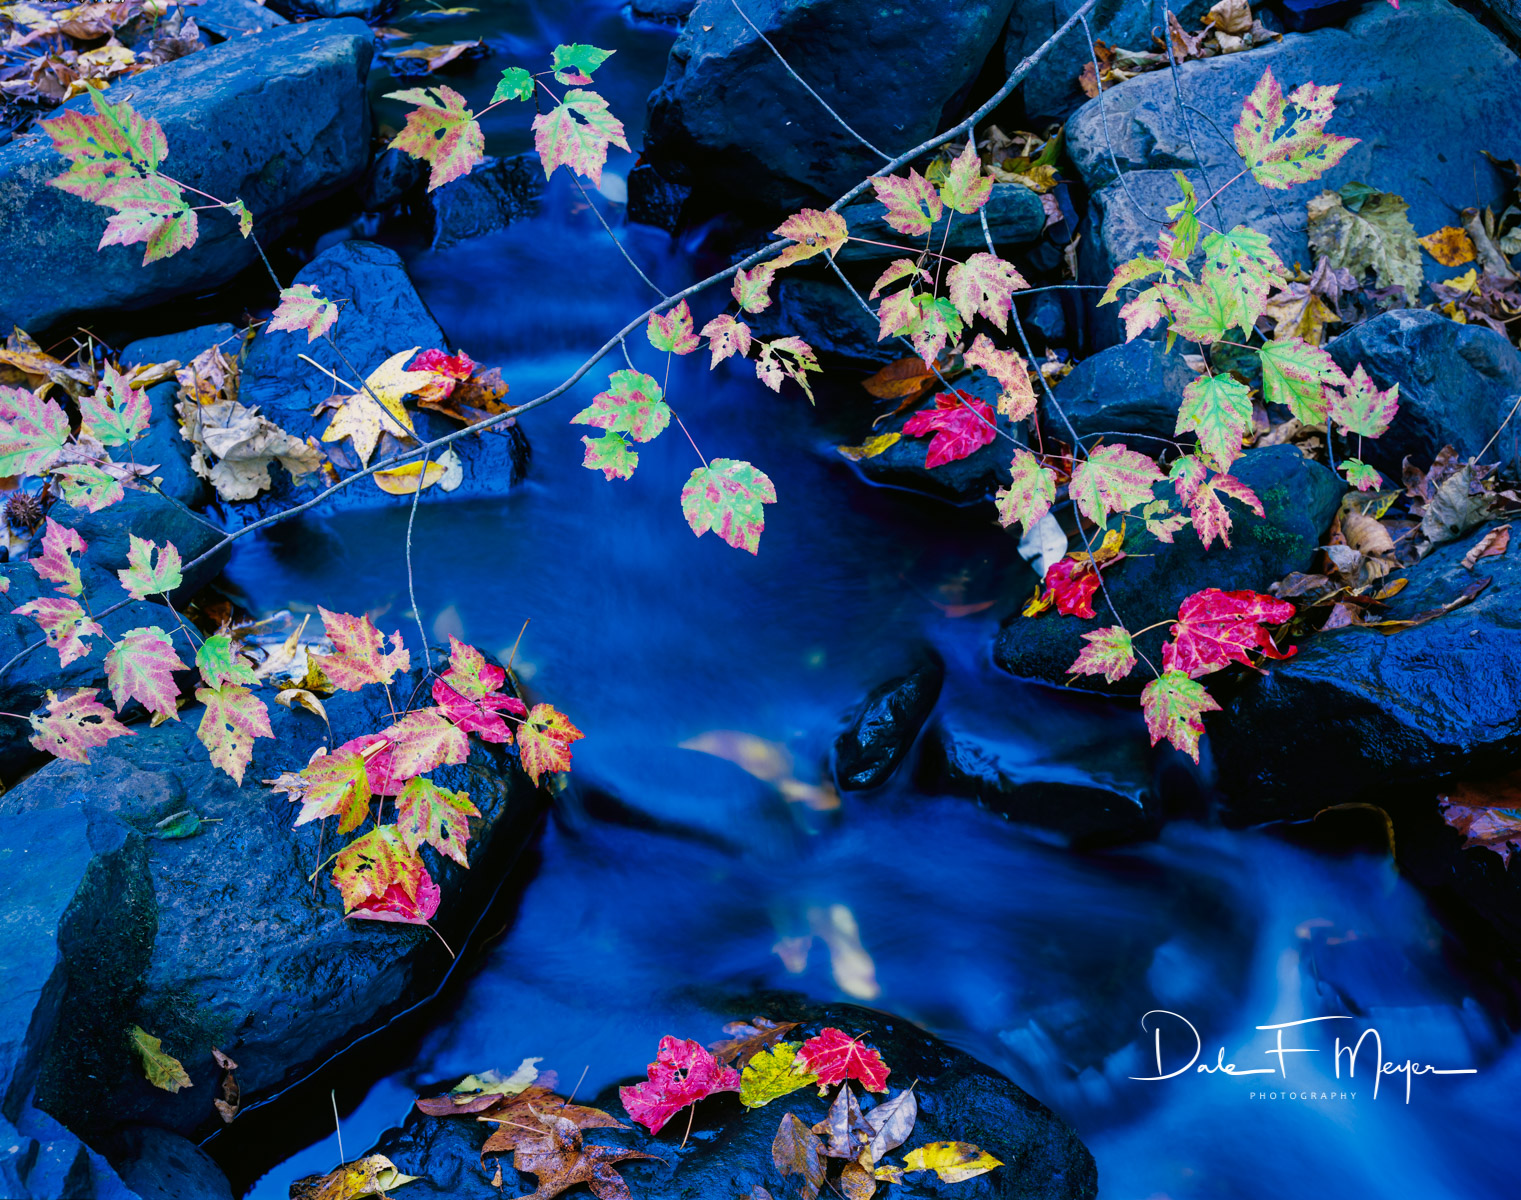 Buffalo River North Arkansas,Upper Buffalo Wilderness Area,fall,rocks and running water, Leafs, Scanned Large Format 4x5 Fuji 50 Velvia., photo